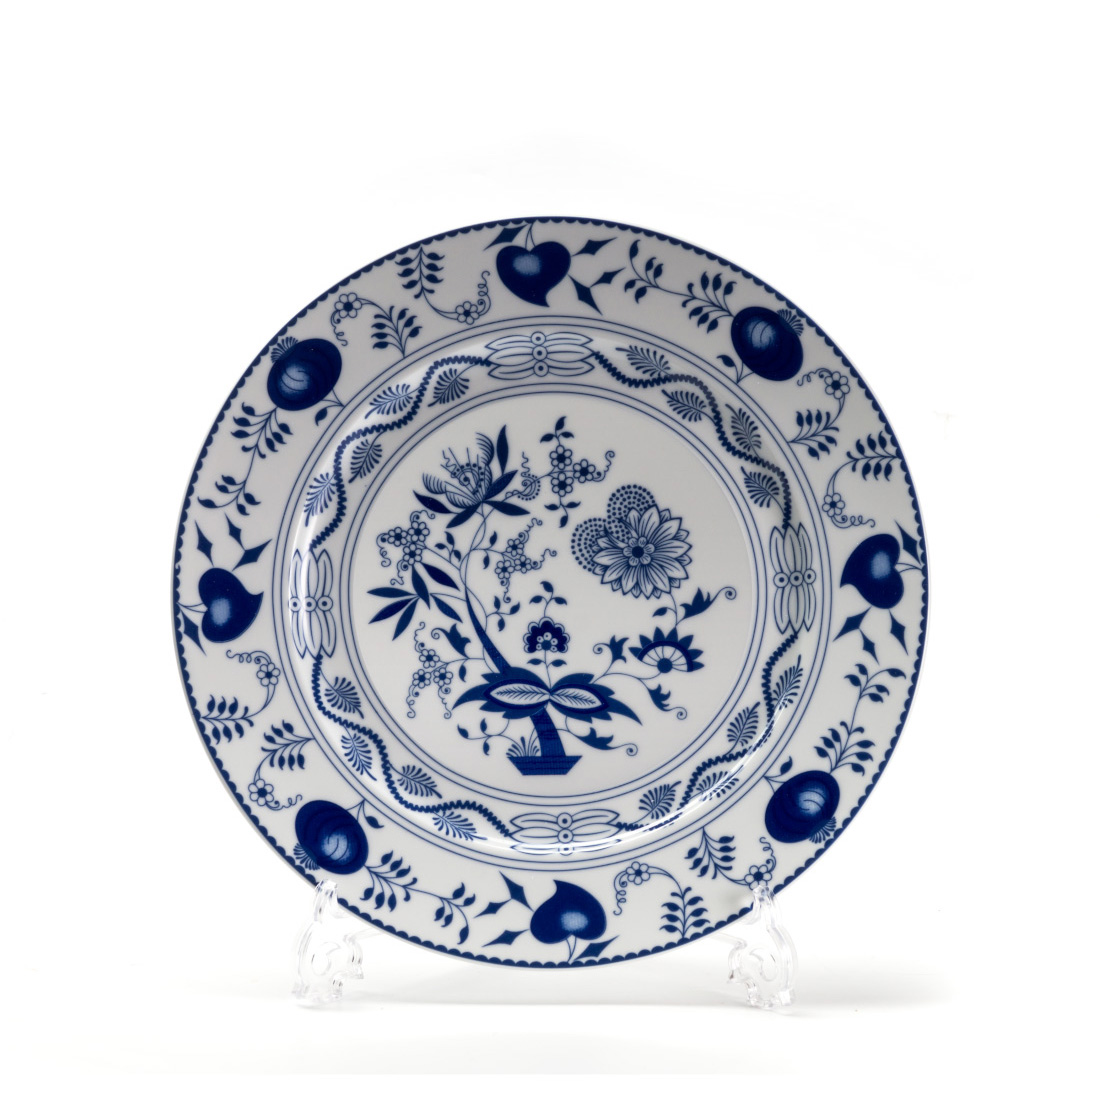 Тарелка десертная Onion blue, 22 см, Фарфор, Tunisian Porcelain, Onion Blue